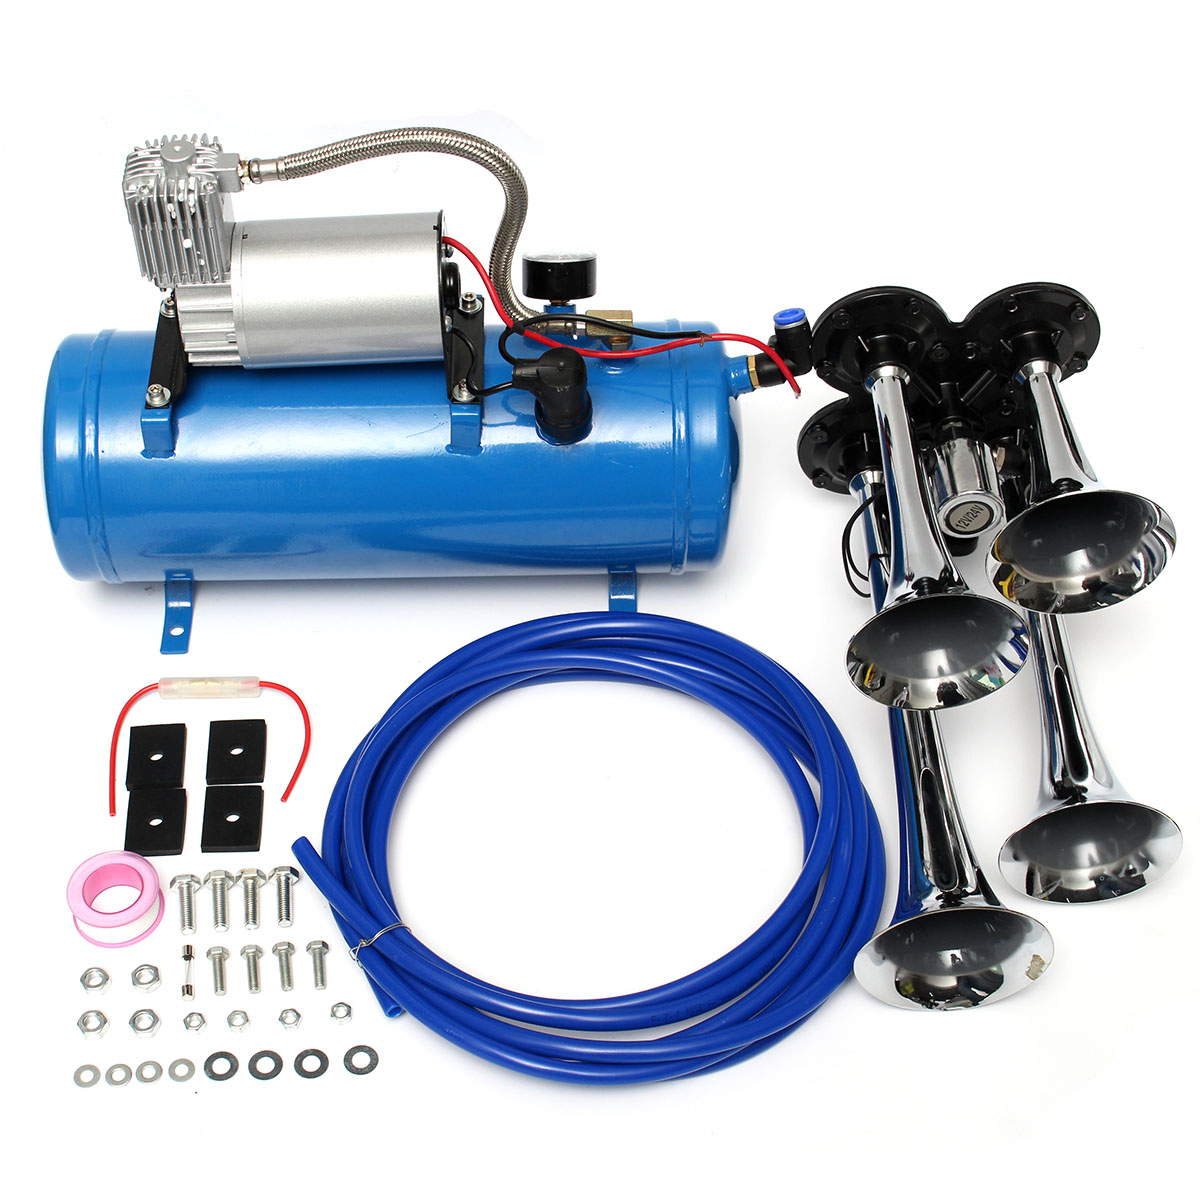 4 Trumpet Vehicle Air Horn 12V Compressor Tubing 150 dB Train 120 PSI Kit 6L db 07